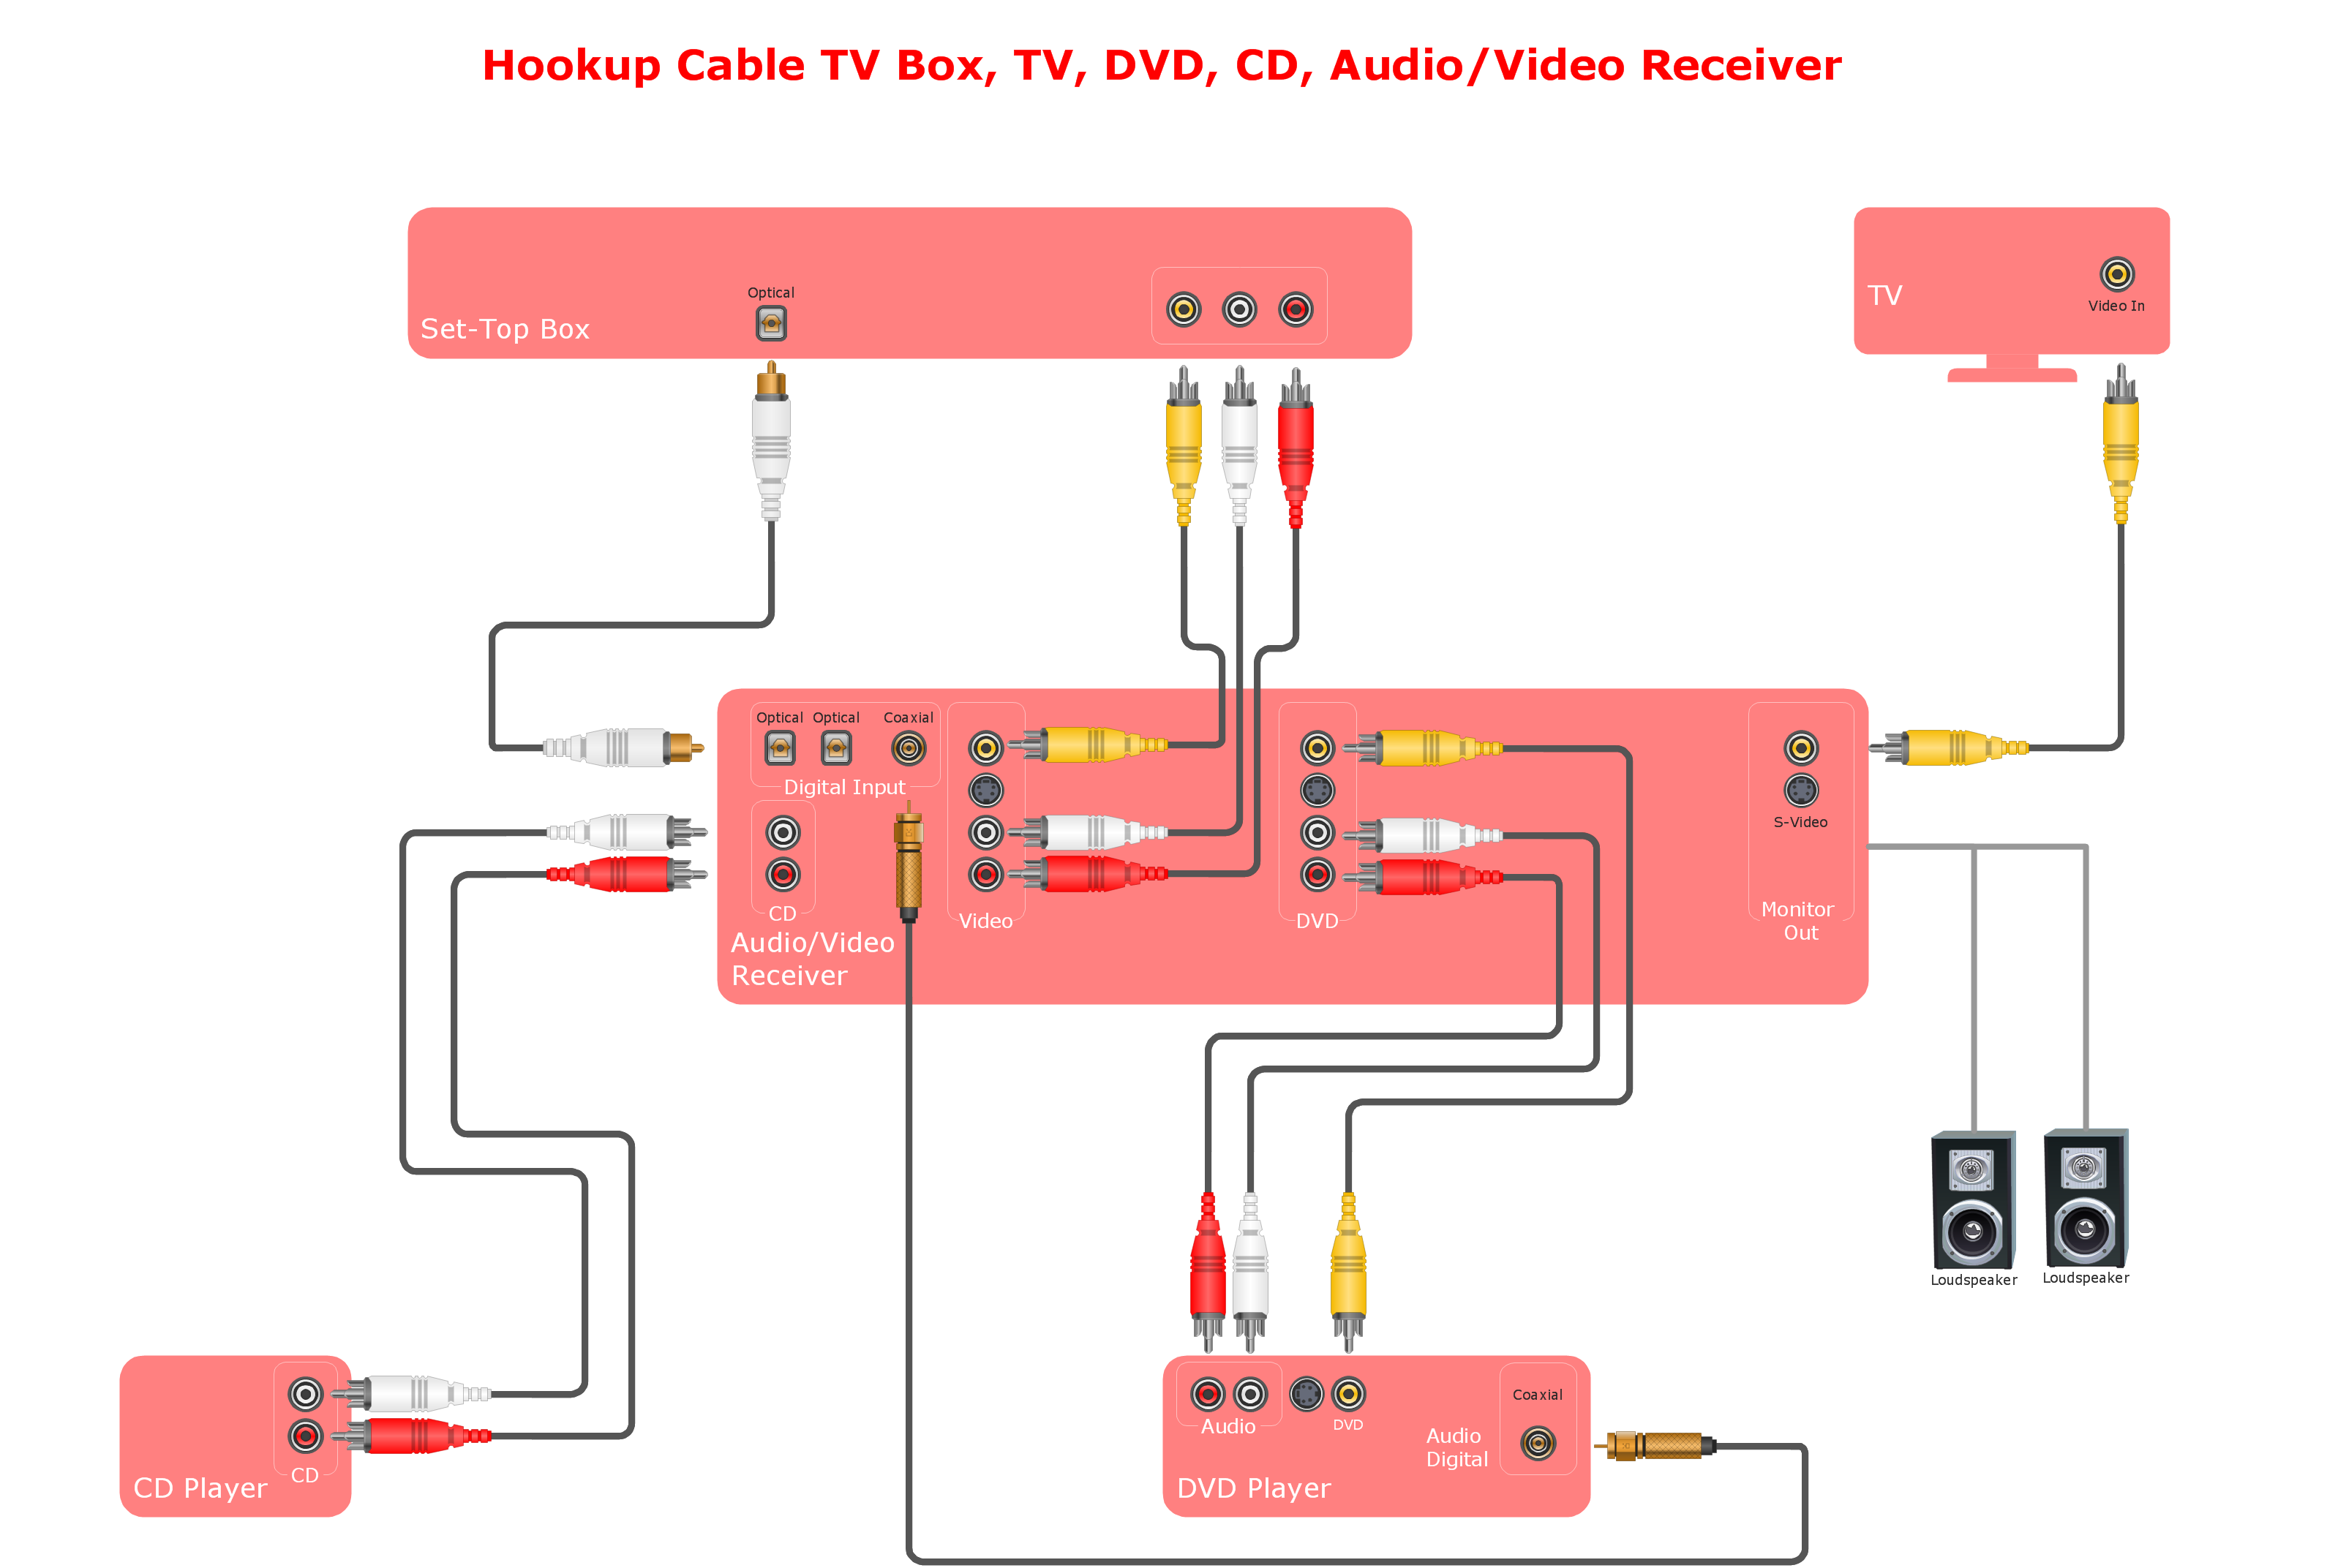 Audio Cable Wiring Diagrams on amplifier wiring diagram, subwoofer wiring diagram, audio cable cover, audio cable pinout, hdmi splitter wiring diagram, fuse wiring diagram, phone connector wiring diagram, ac power cord wiring diagram, accessories wiring diagram, audio distribution diagram, usb hub wiring diagram, audio cable color code, software wiring diagram, usb adapter wiring diagram, xlr connector wiring diagram, dvd player wiring diagram, earphone wiring diagram, phone cord wiring diagram, case wiring diagram, camera wiring diagram,